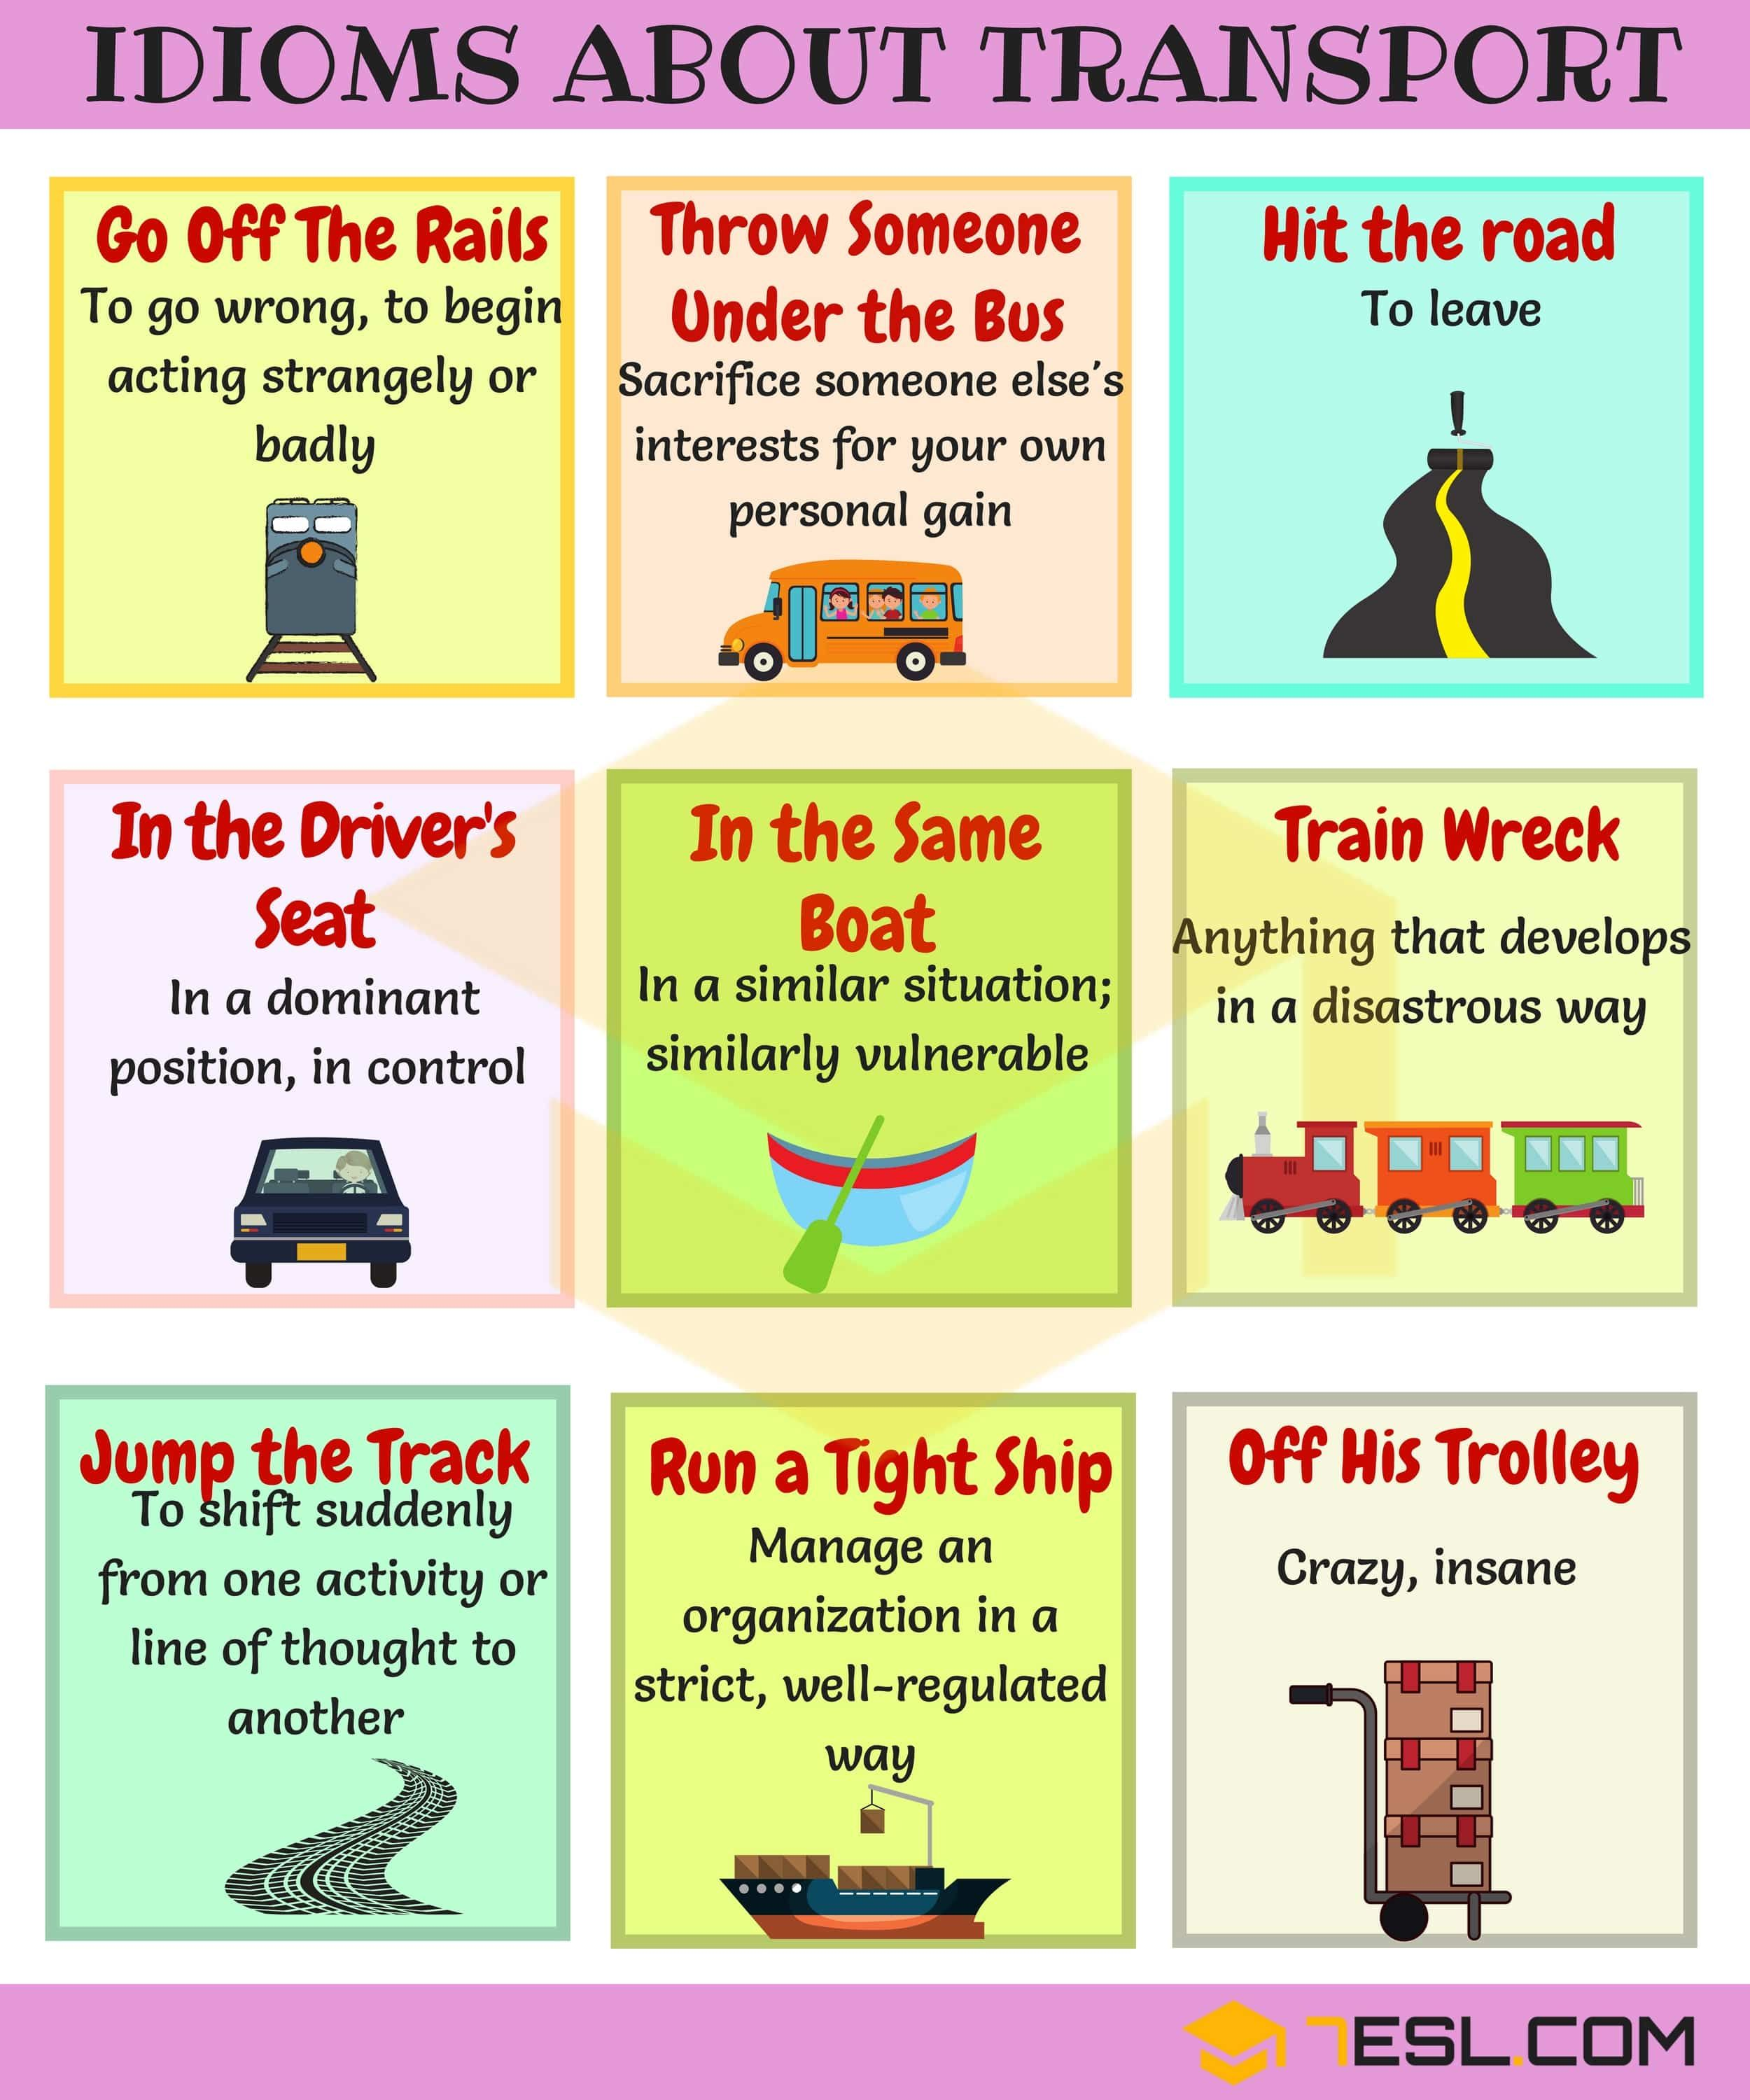 Travel Idioms 60 Useful Transport And Travel Idioms In